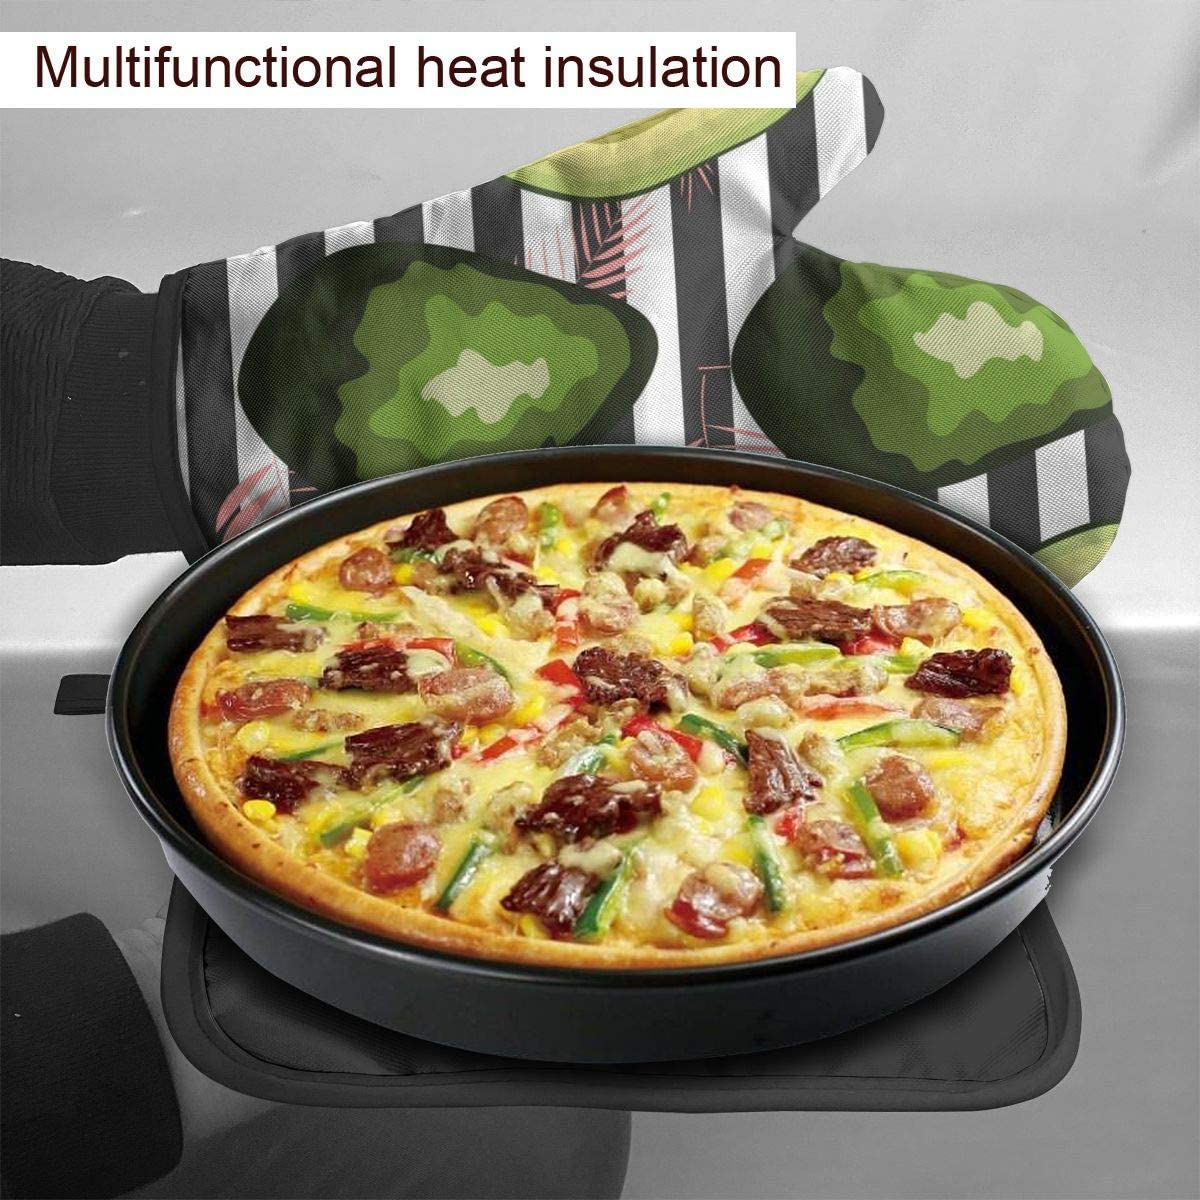 REONI Striped Avocado Fruit Cute Microwave Oven Mitts and Pot Holders Cover Set Heat Insulation Blanket Mat Pad Mittens Glove Baking Pizza Barbecue BBQ Accessories Home Kitchen Decor